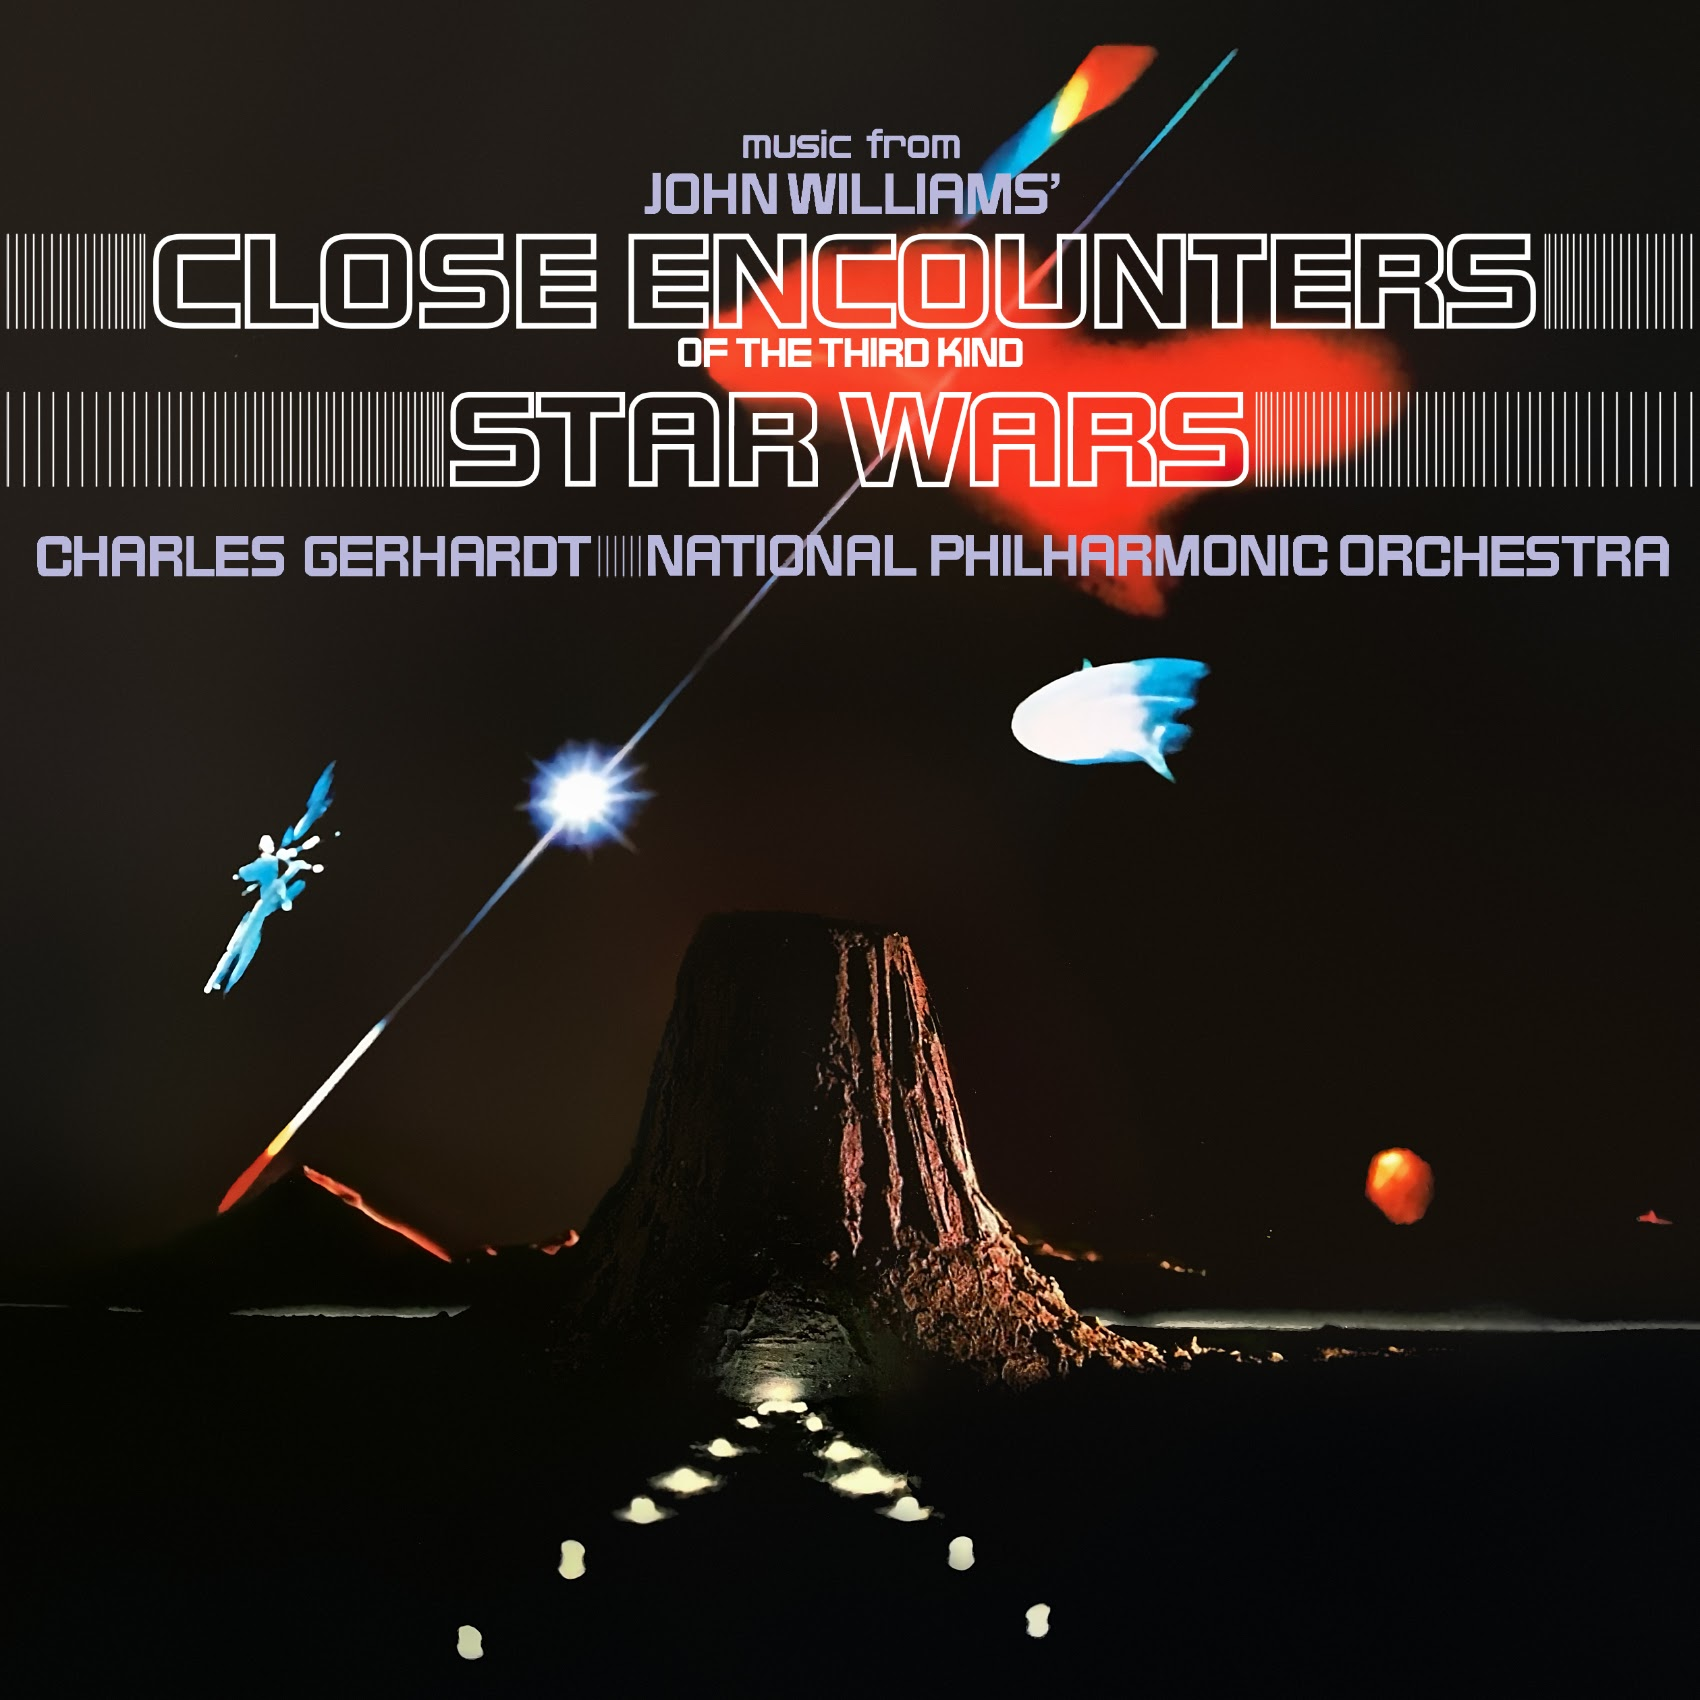 Album Artist: Charles Gerhardt & National Philharmonic Orchestra / Album Title: Music from John Williams' Close Encounters of the Third Kind & Star Wars